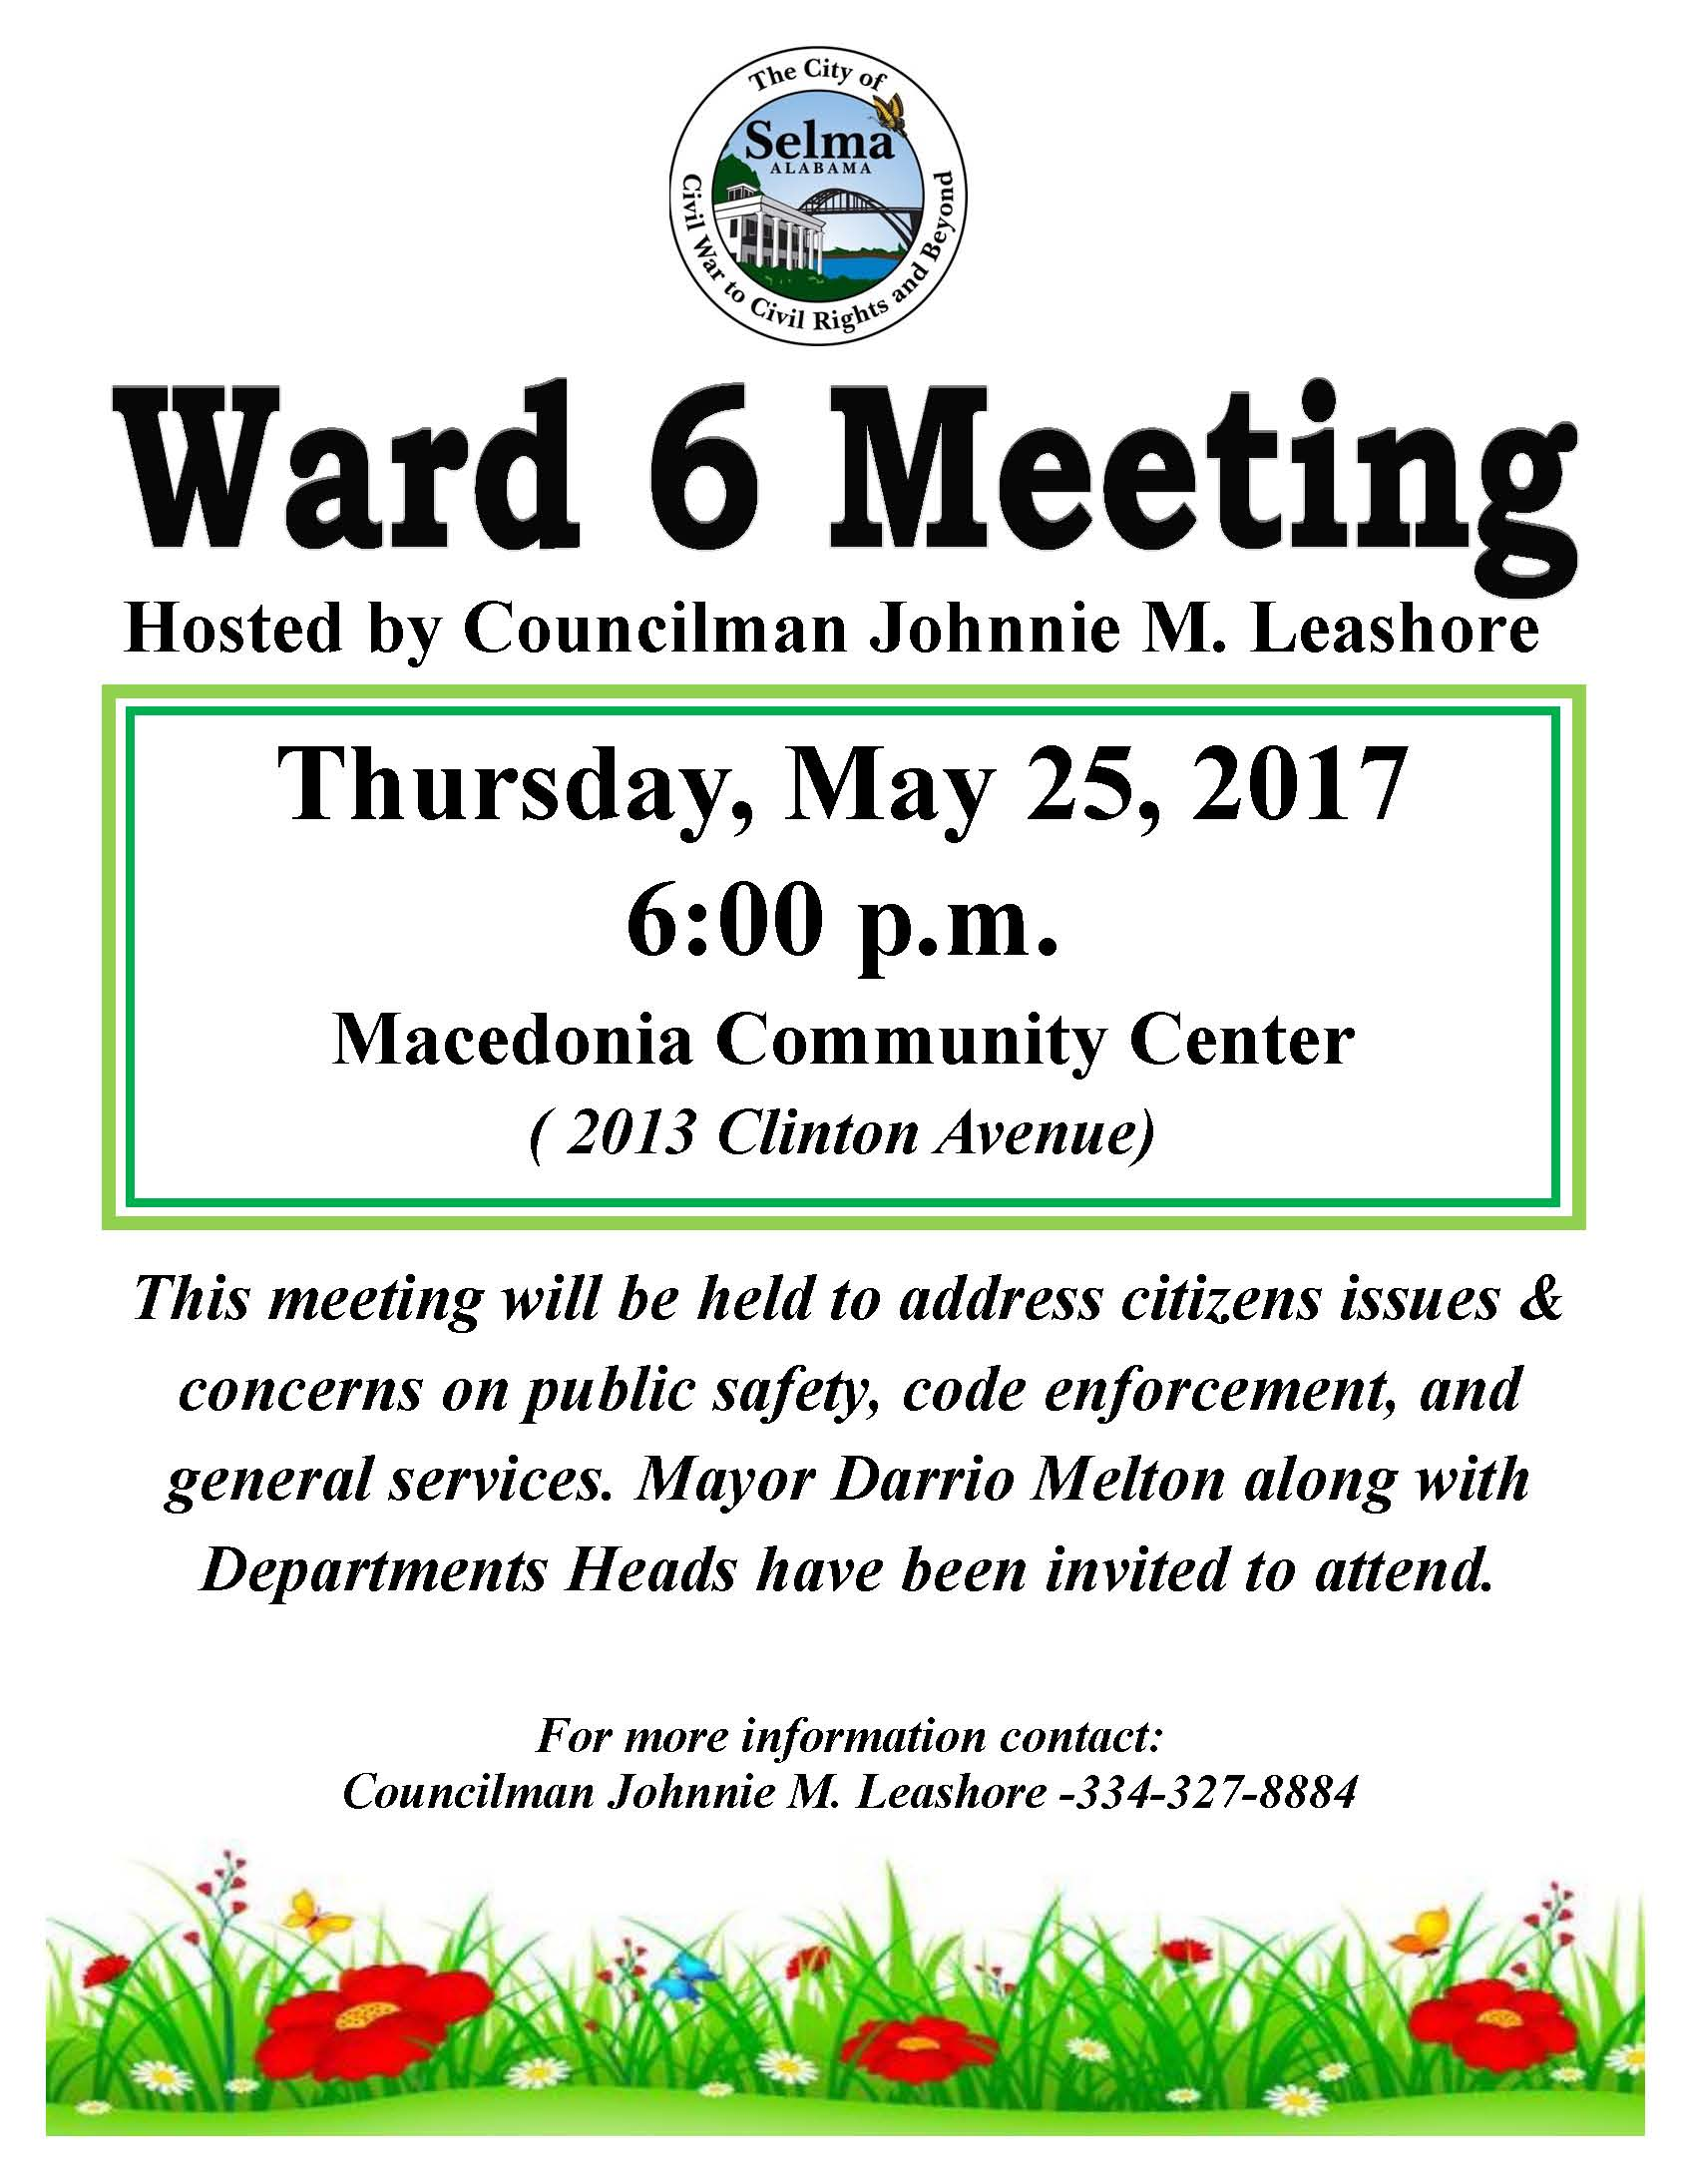 Leashore Ward 6 Meeting Flyer 5.25.17